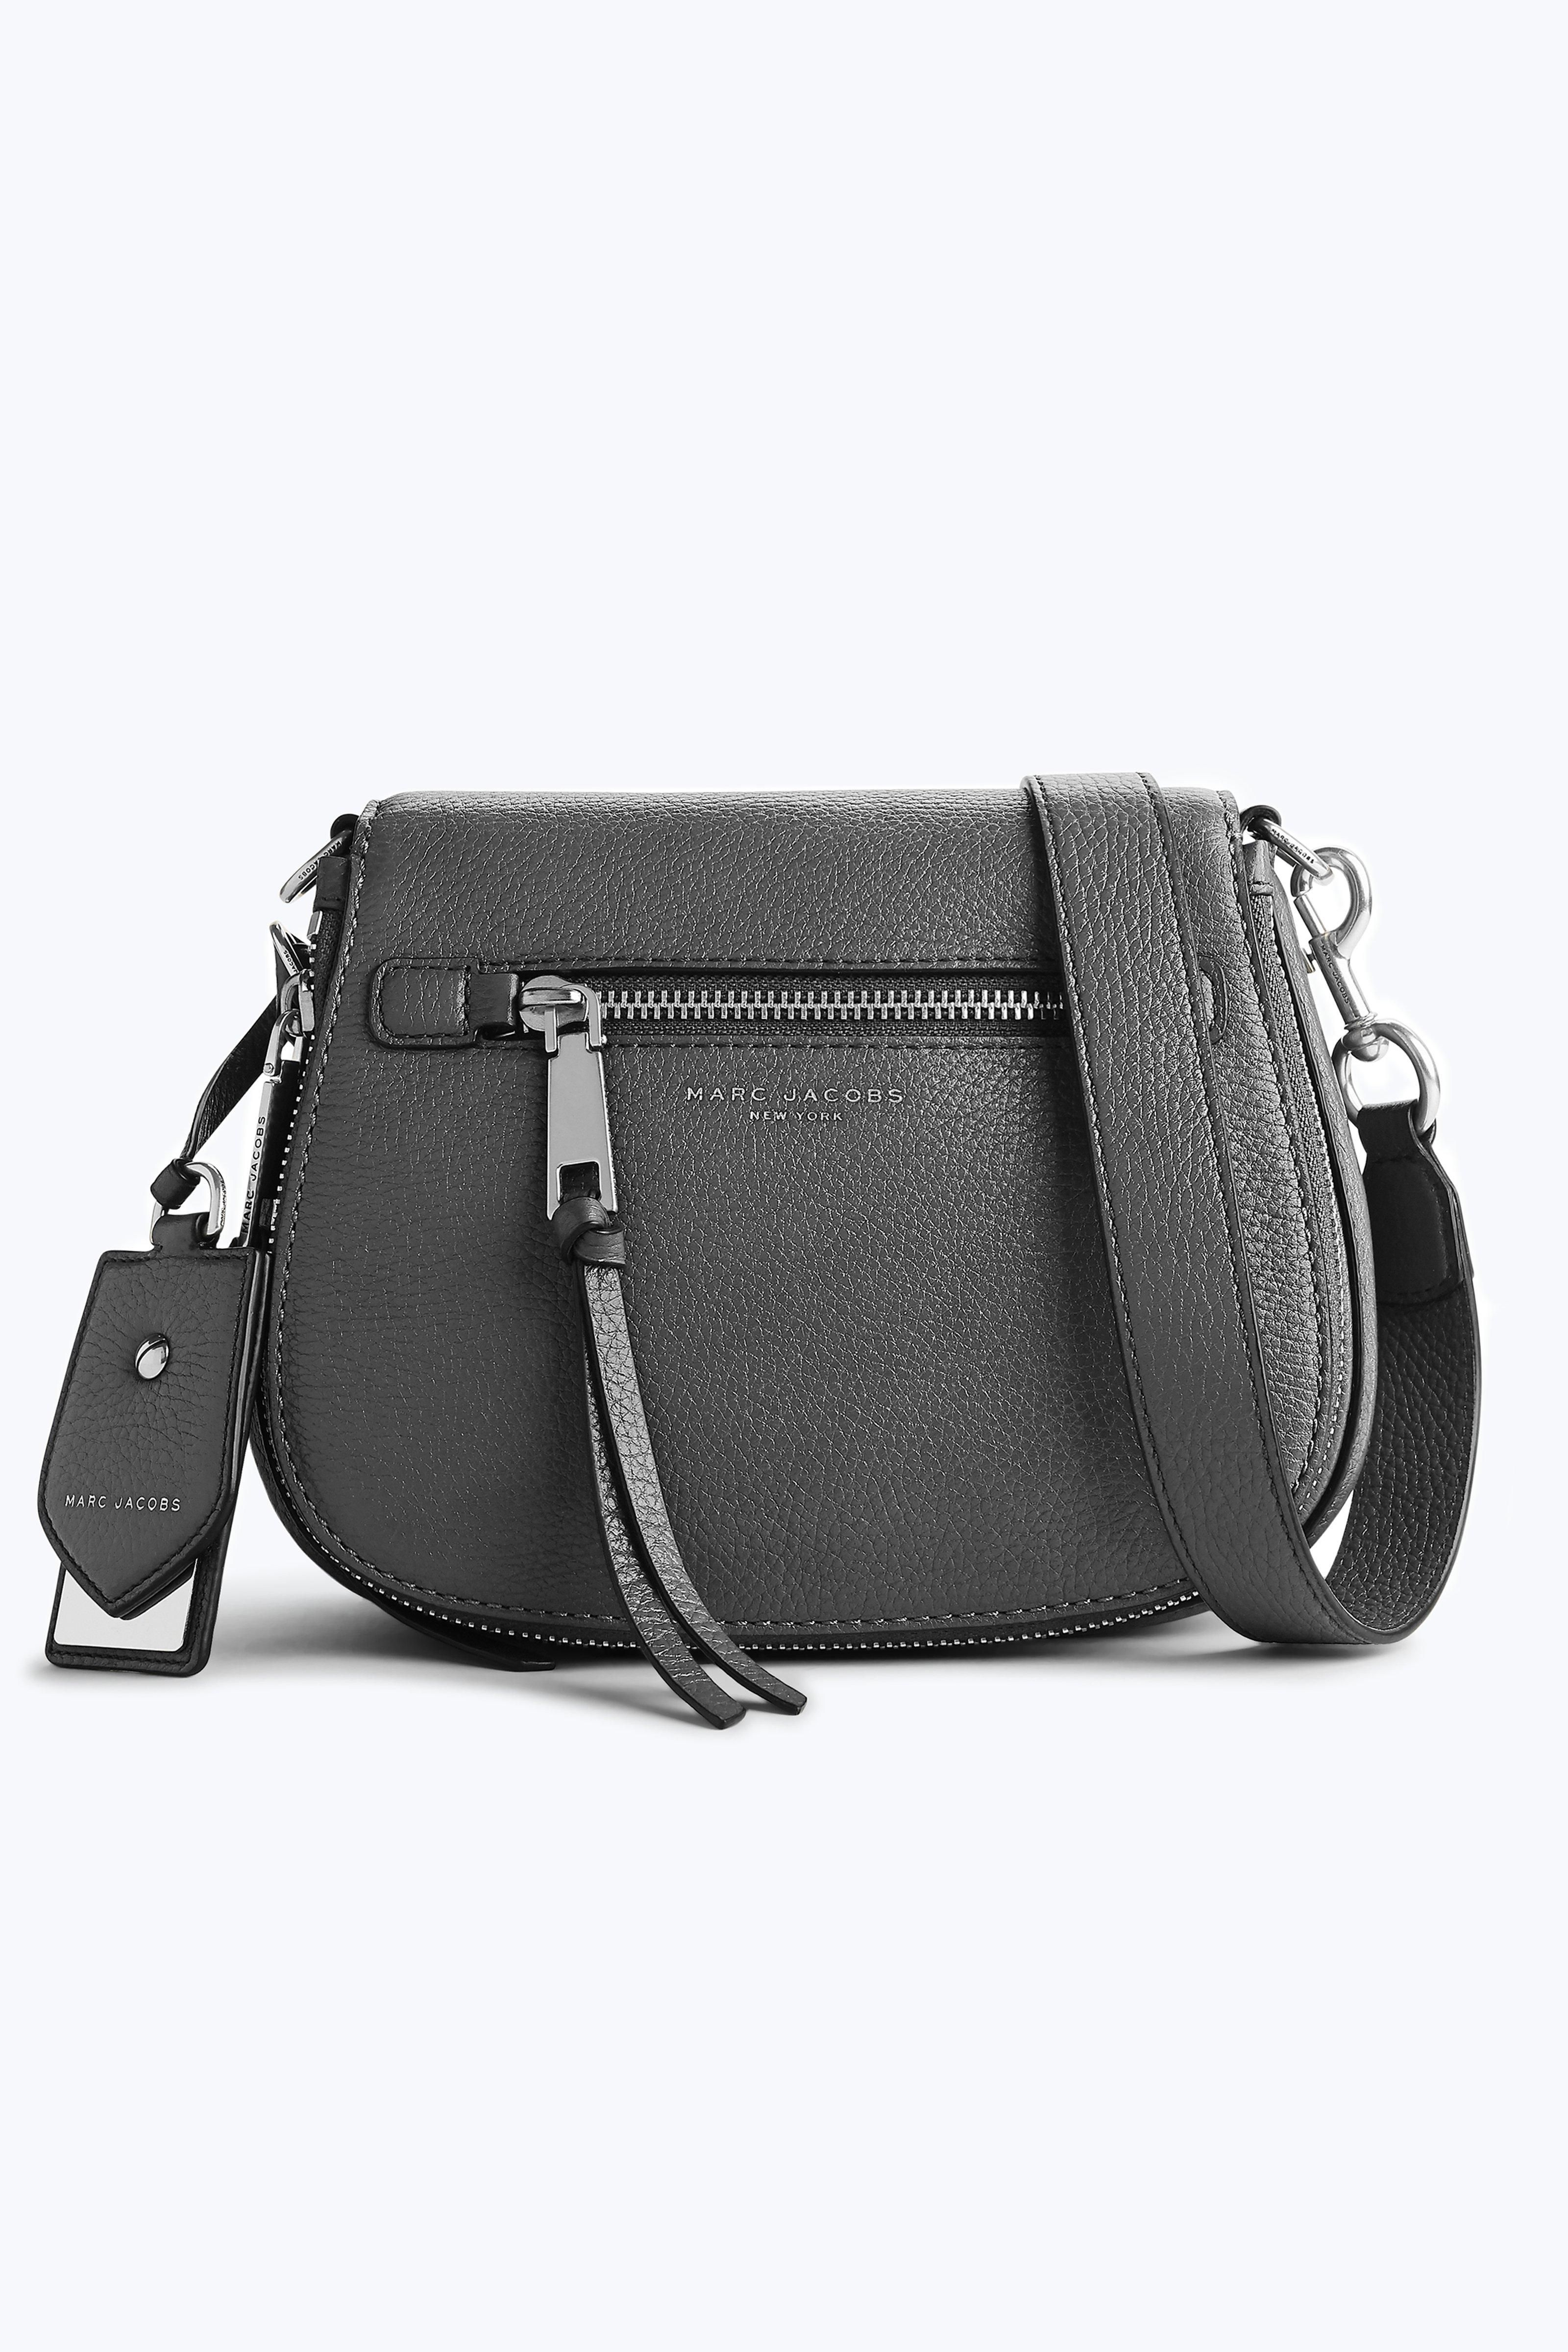 MARC JACOBS Recruit Nomad Saddle Bag. #marcjacobs #bags #